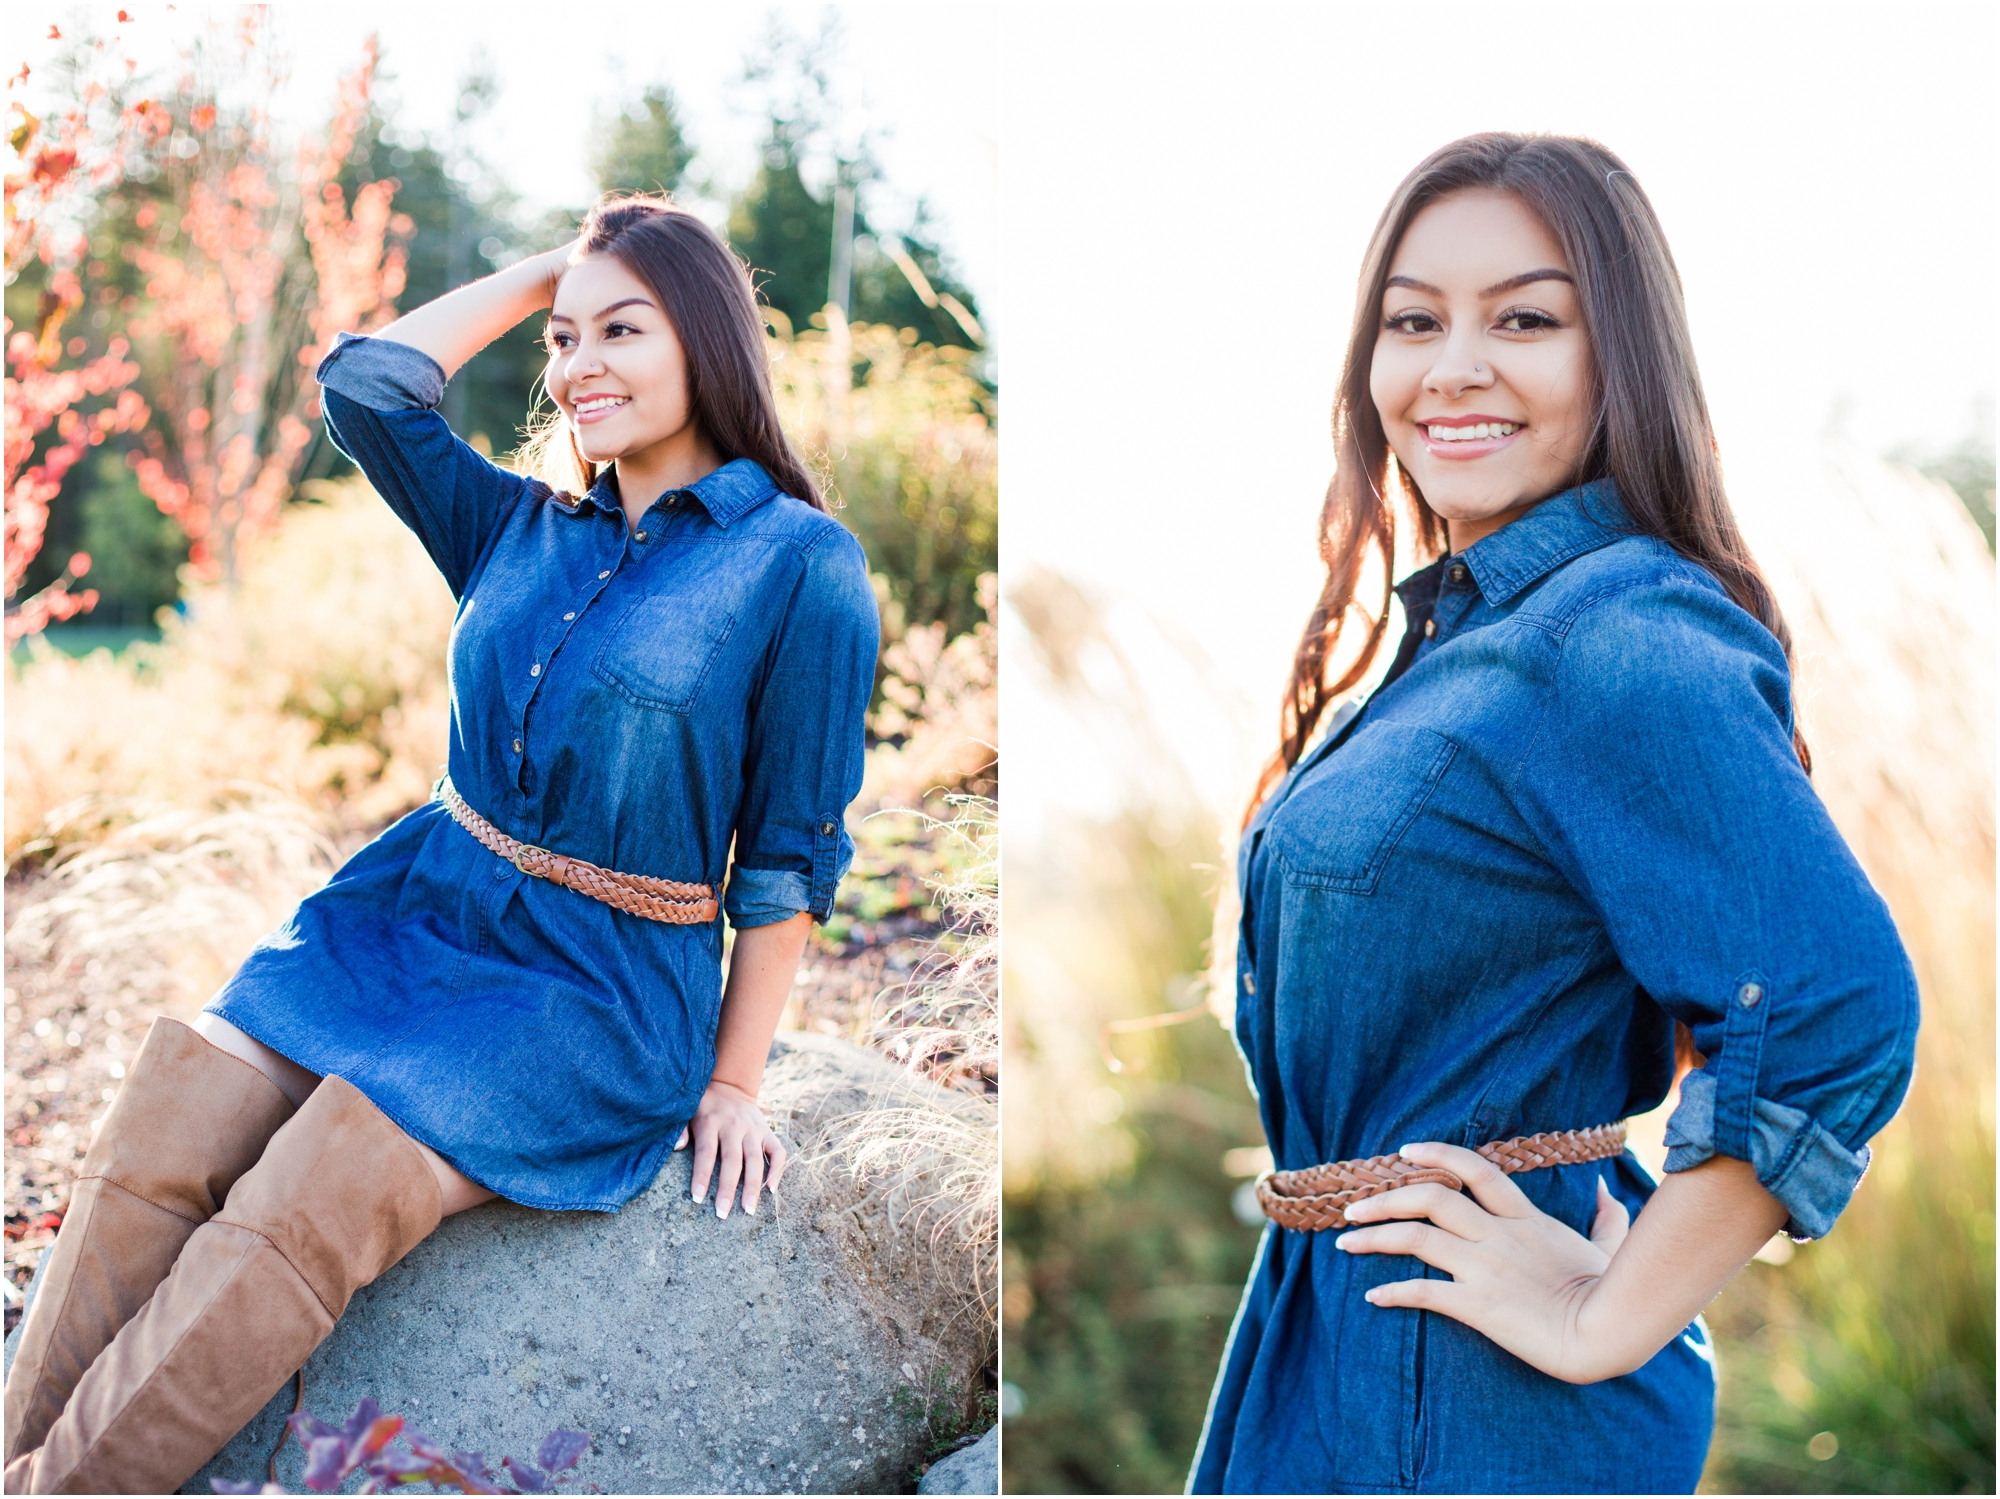 High School Senior portriats by Briana Calderon Photography based in the Greater Seattle & Tacoma, WA_0938.jpg